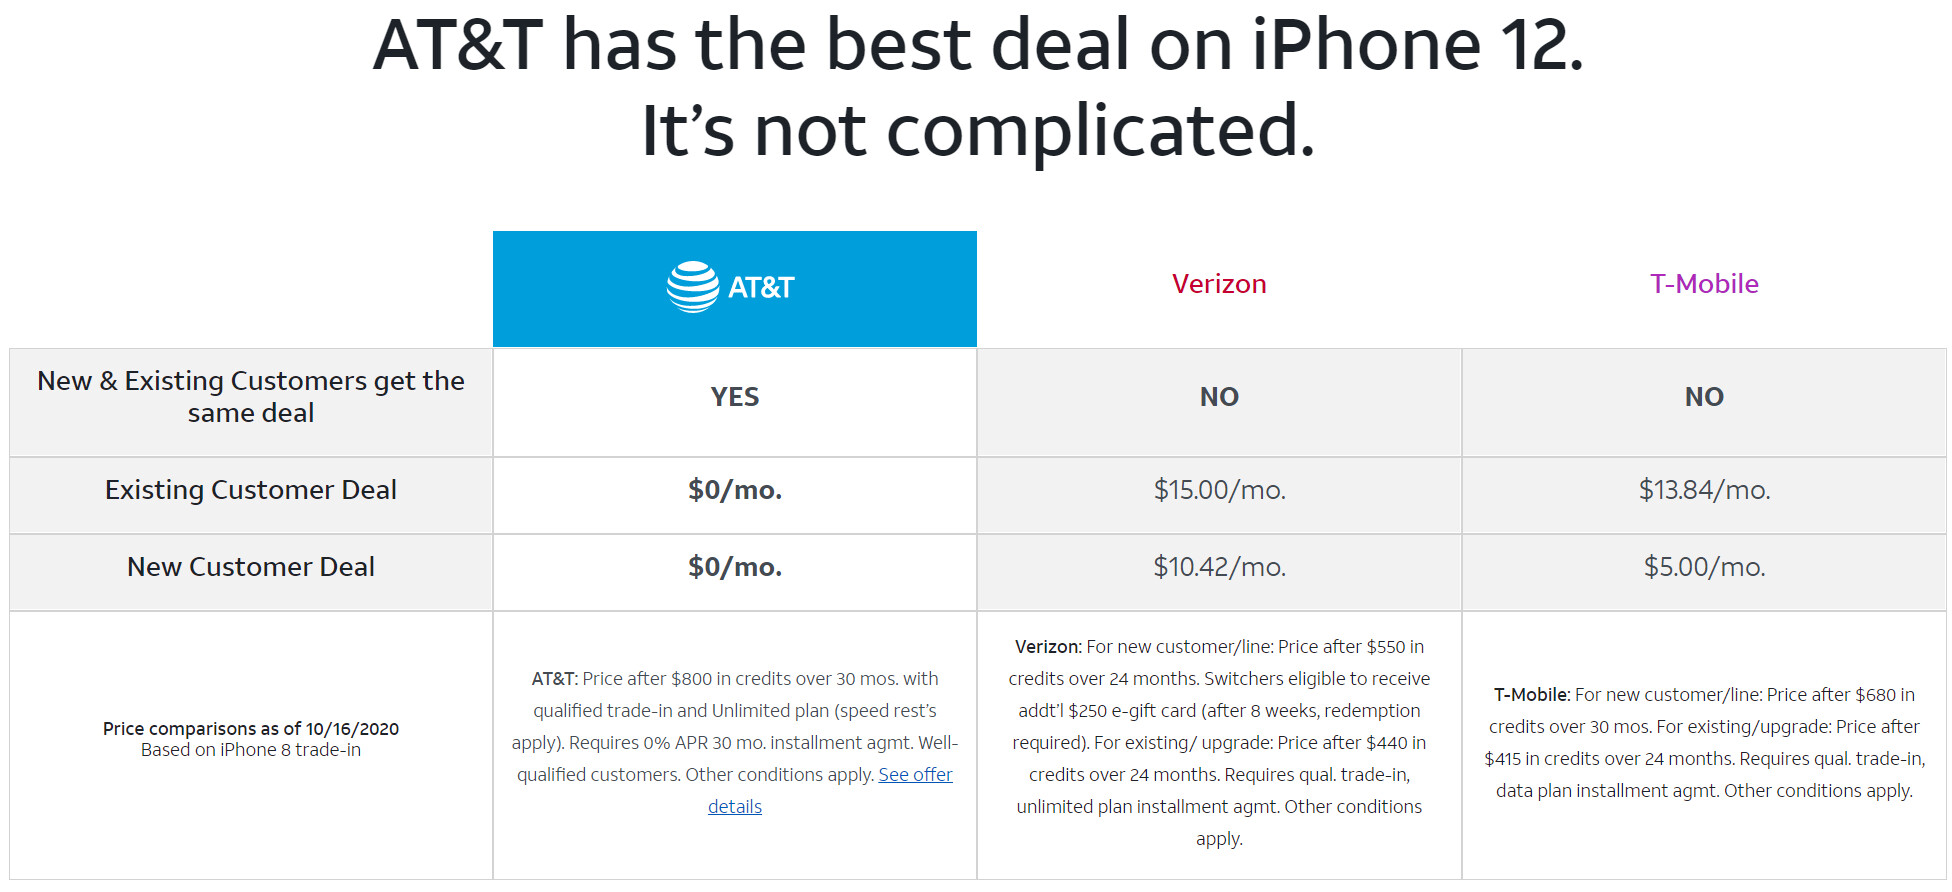 For now, AT&T claims the best iPhone 12 deal on offer - The best iPhone 12 price and deals on T-Mobile, Verizon, or AT&T